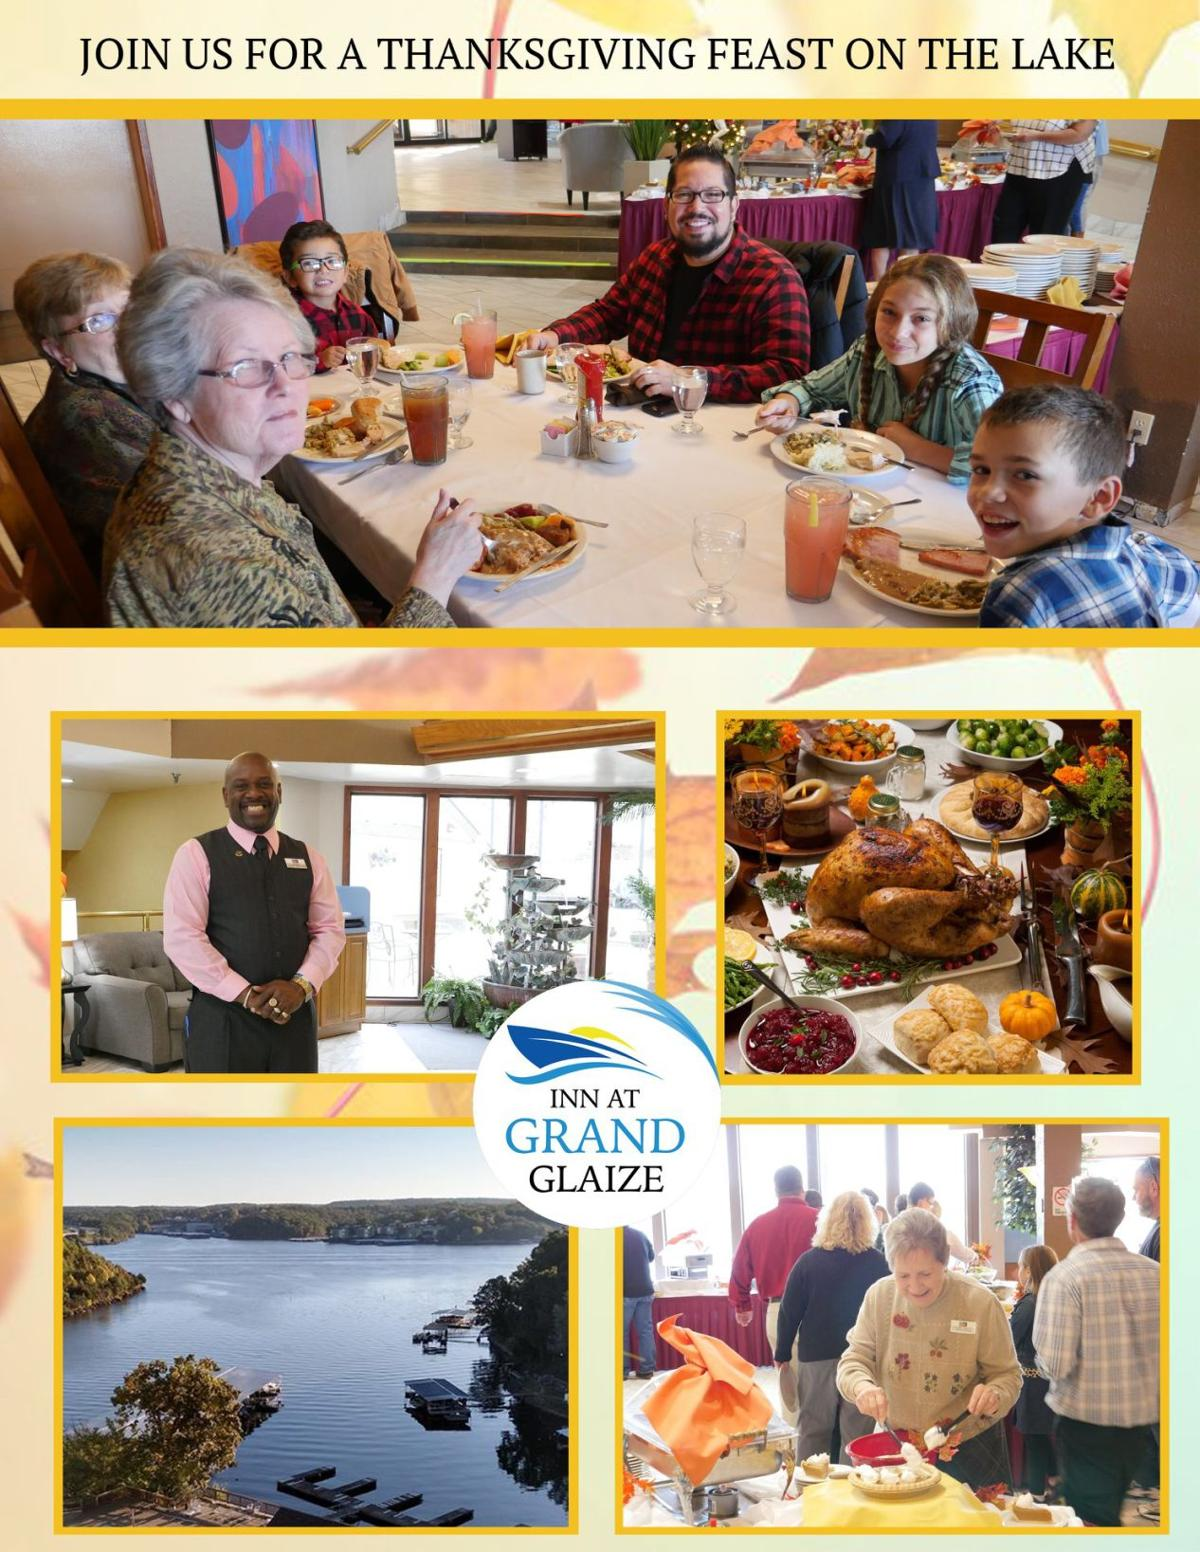 61 Family Friendly Living Room Interior Ideas: Thanksgiving Feast At The Inn At Grand Glaize